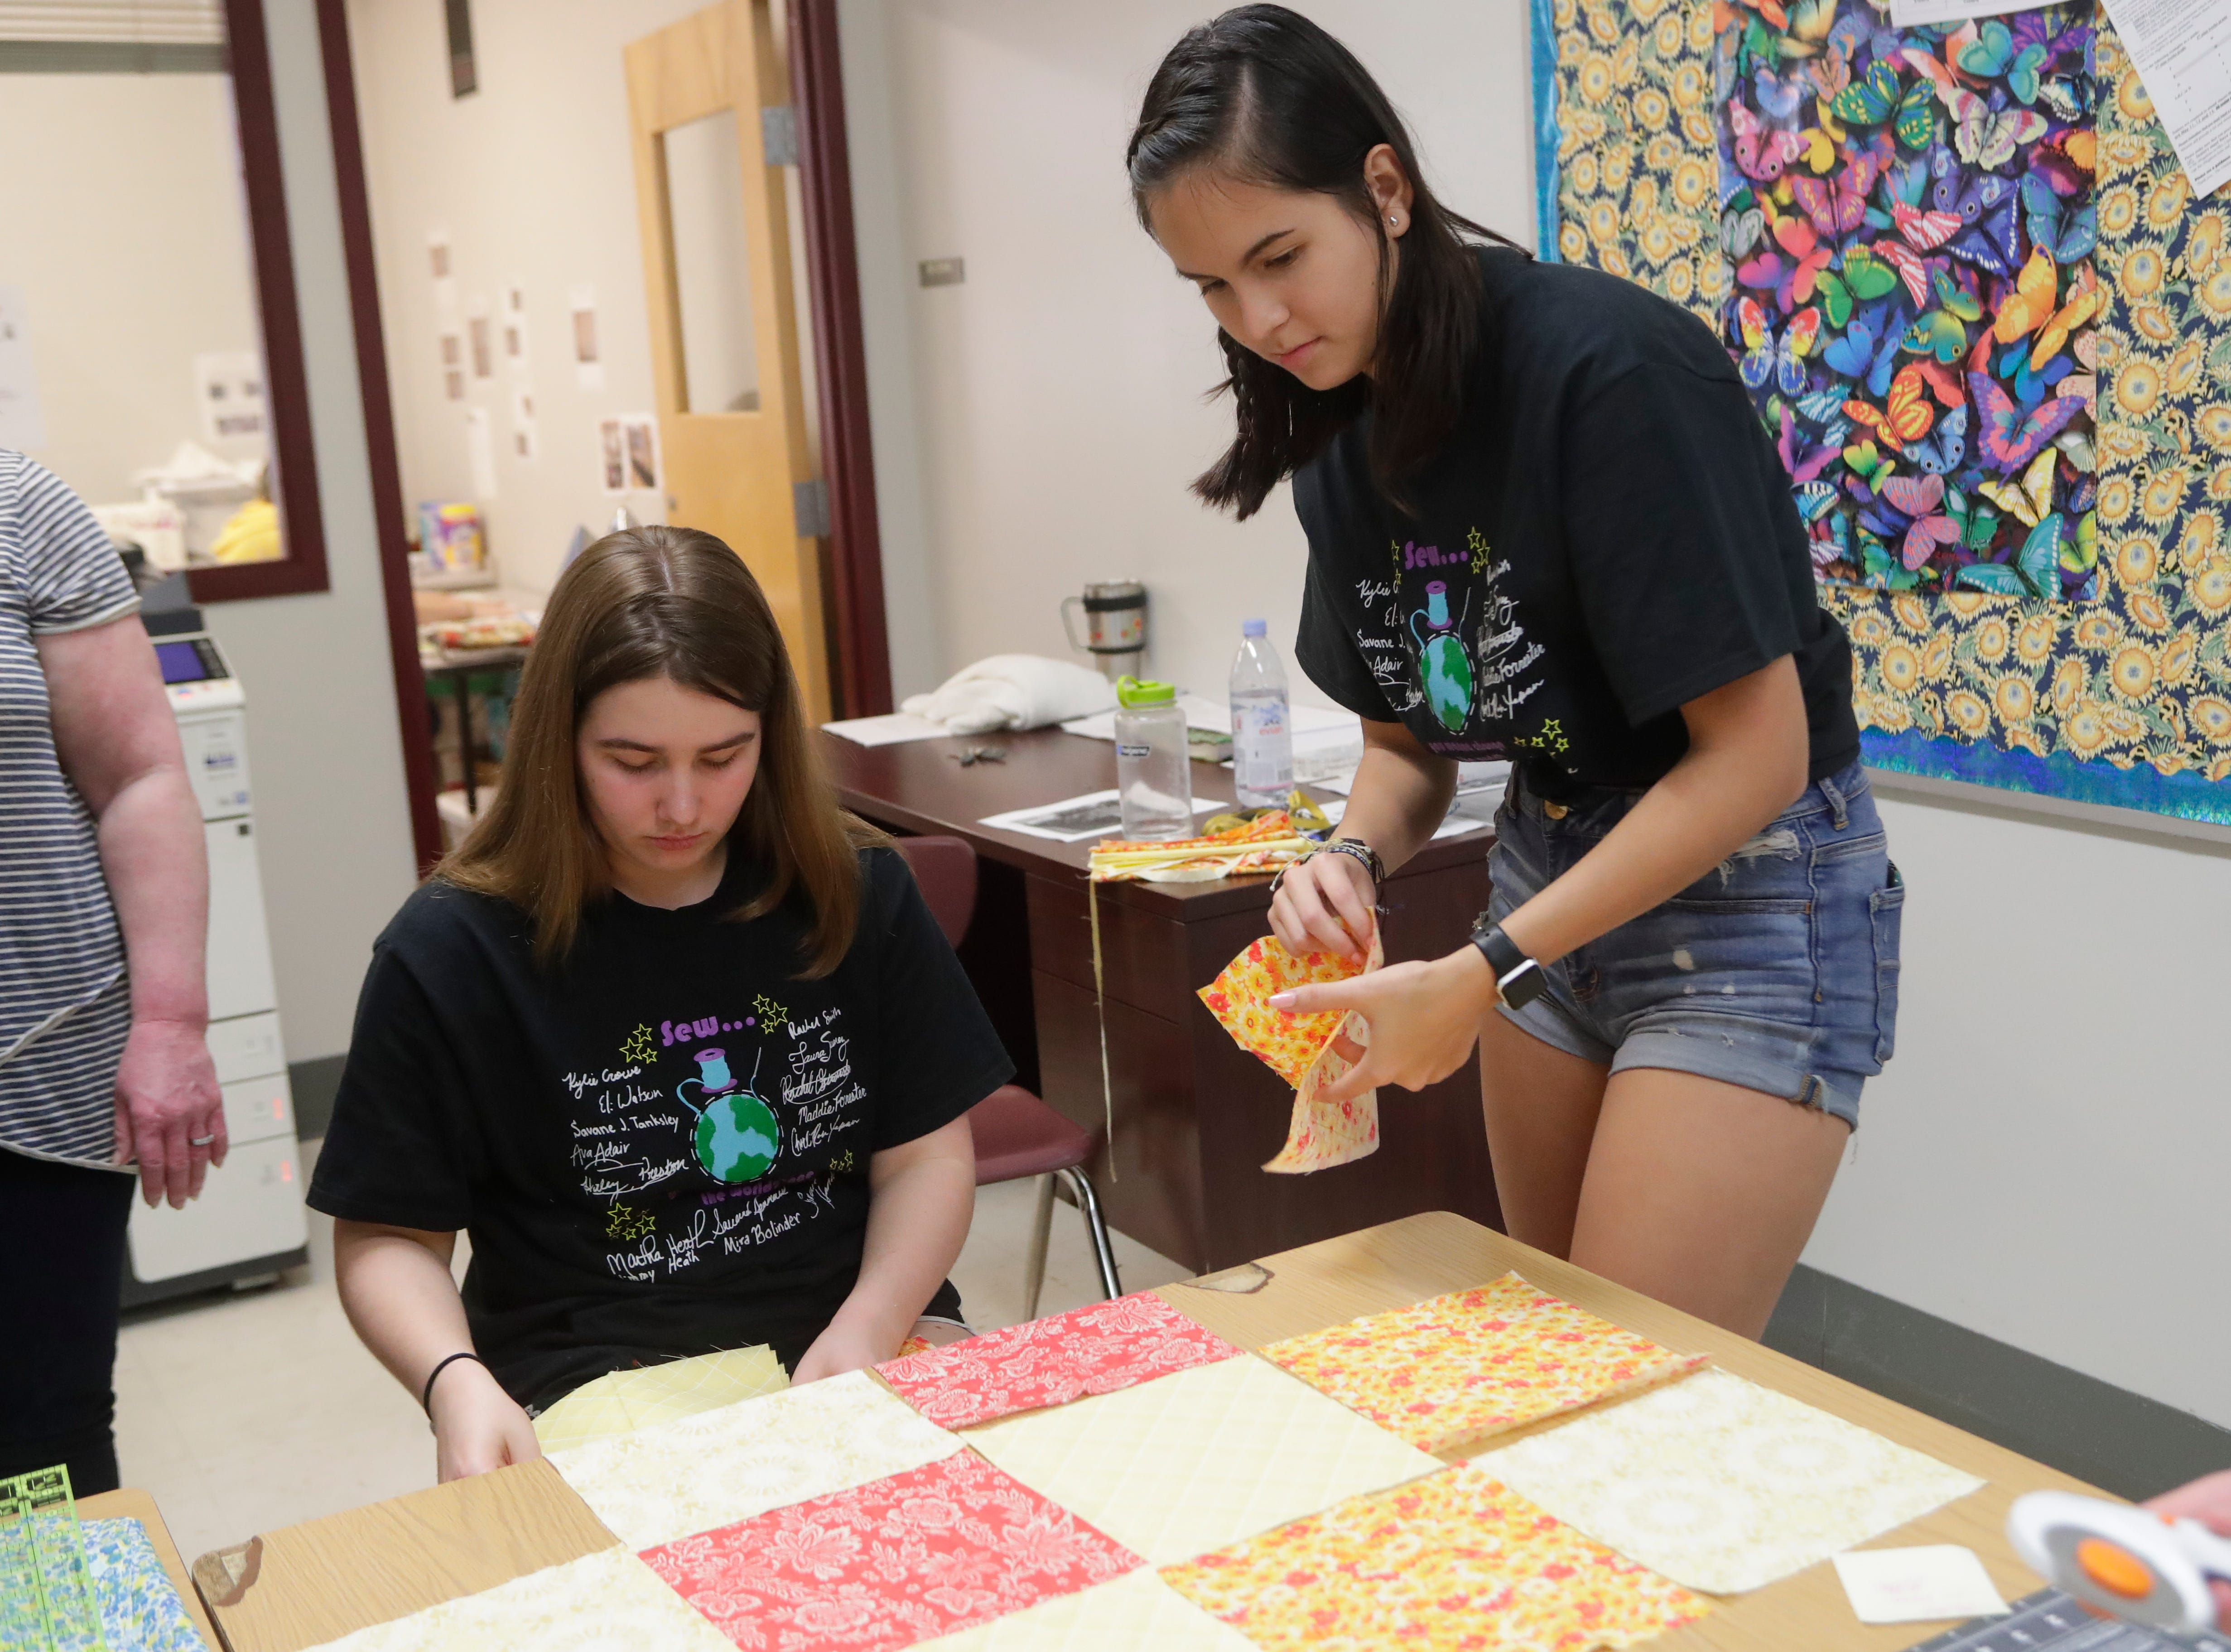 Rachel Ostrander, a senior at Chiles High School and member of the Chiles Sewing Club, left, and Laura Suarez, also a senior at Chiles High School, layout fabric squares as they prepare to make a quilt for people at Refuge House, Thursday Feb. 21, 2019.